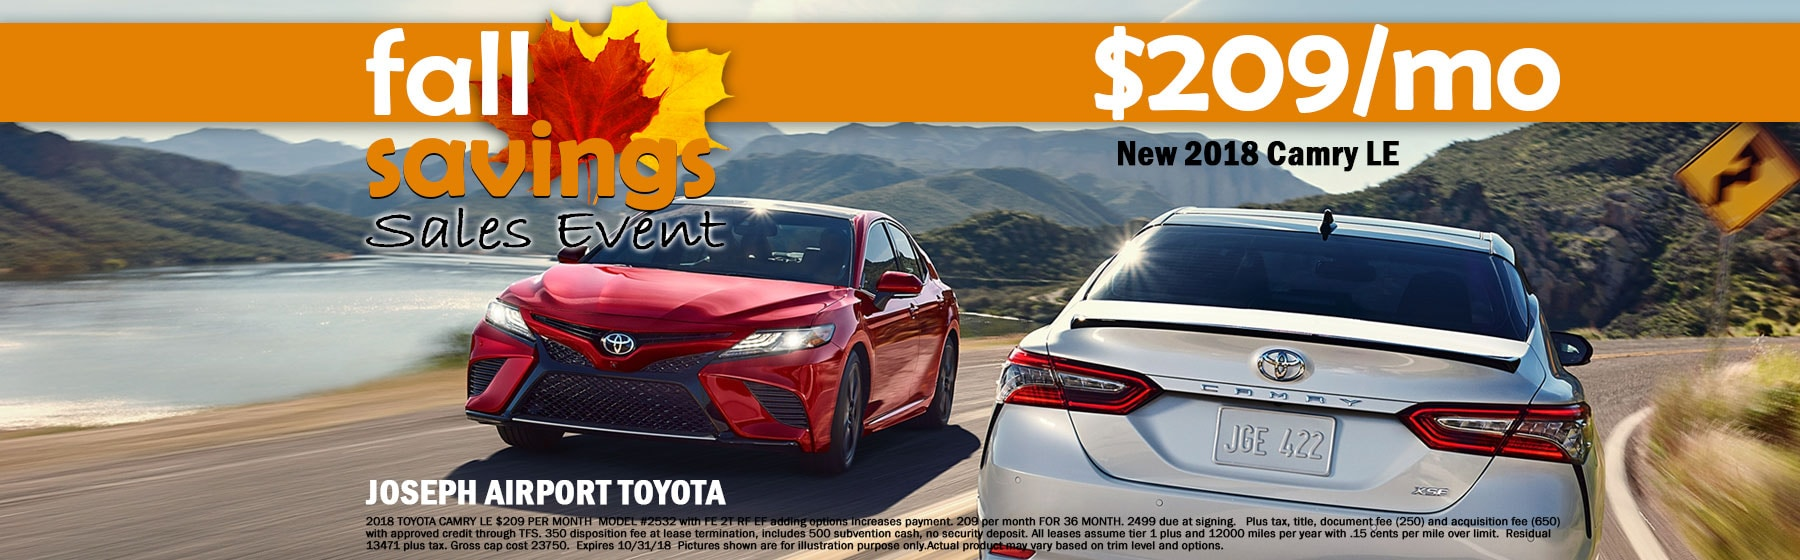 Toyota Camry Lease Special September 2018 in Dayton OH